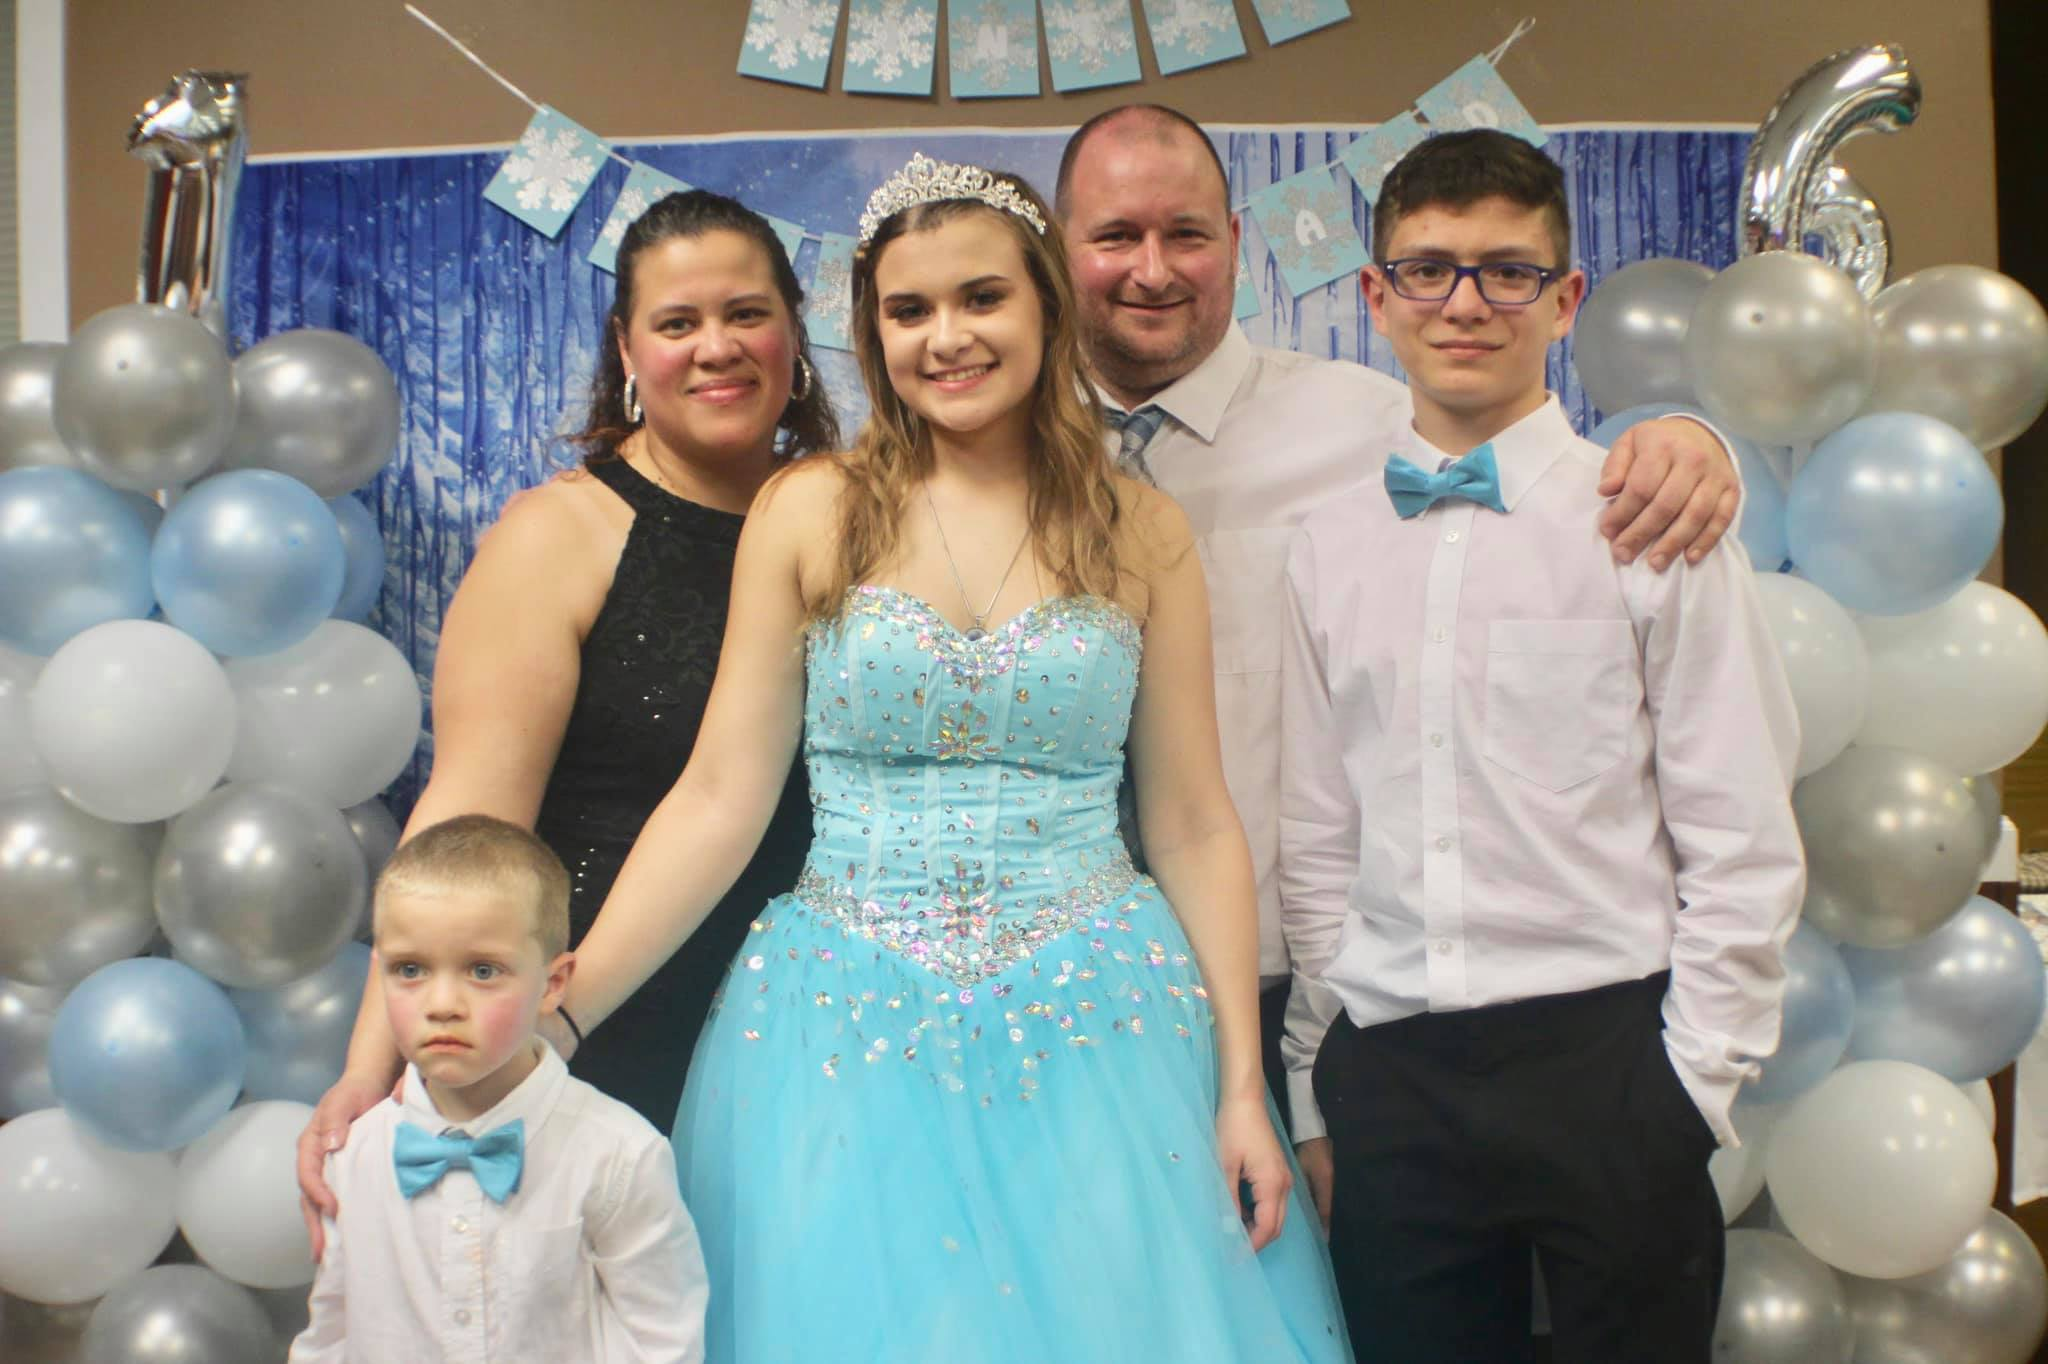 Wilson Community Center Sweet 16 with Appalachian Entertainment Lehigh Valley fun party dj